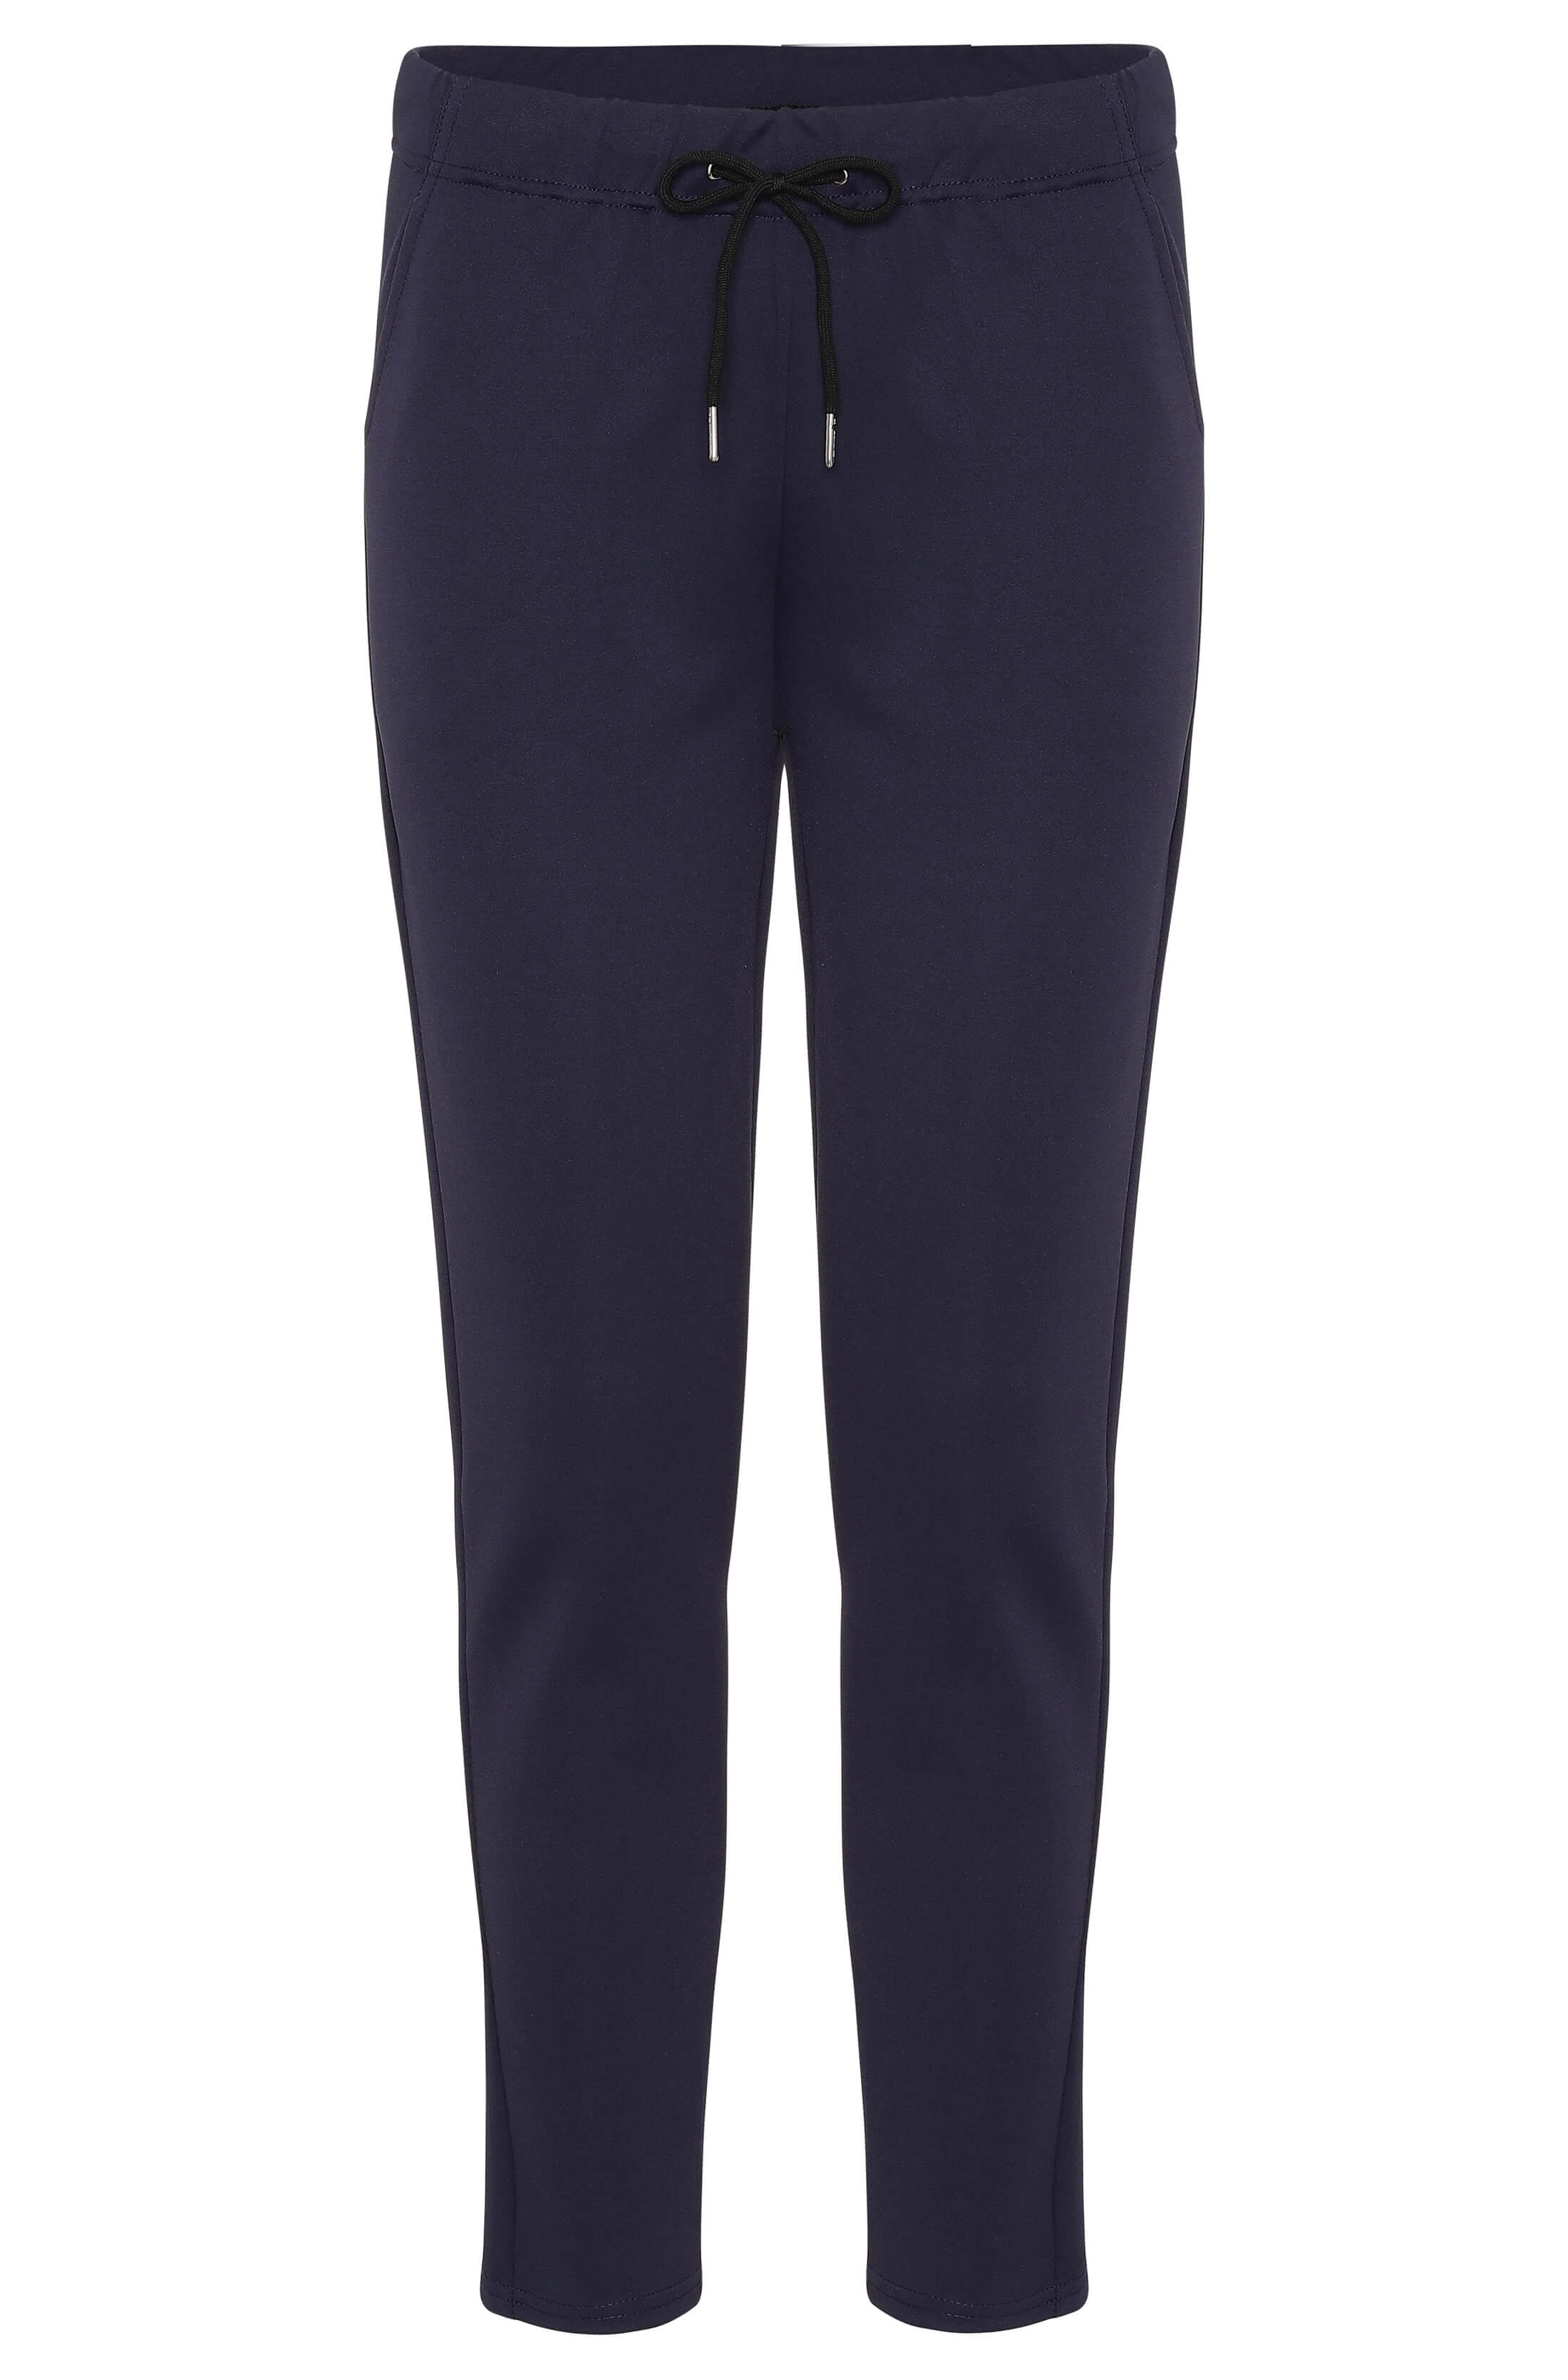 Soft blue chinos with stretch fit